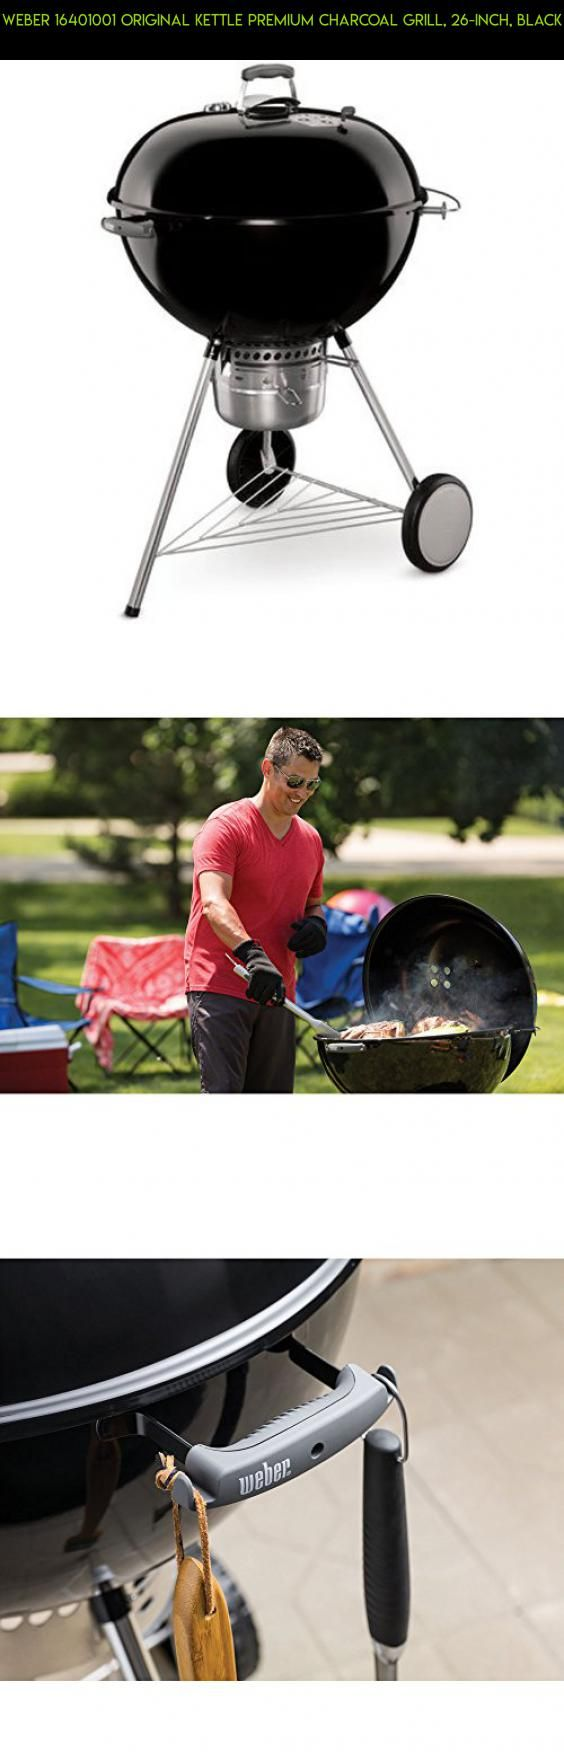 Weber 16401001 Original Kettle Premium Charcoal Grill, 26-Inch, Black #grills #parts #racing #fpv #products #drone #shopping #technology #charcoal #plans #gadgets #tech #weber #camera #kit